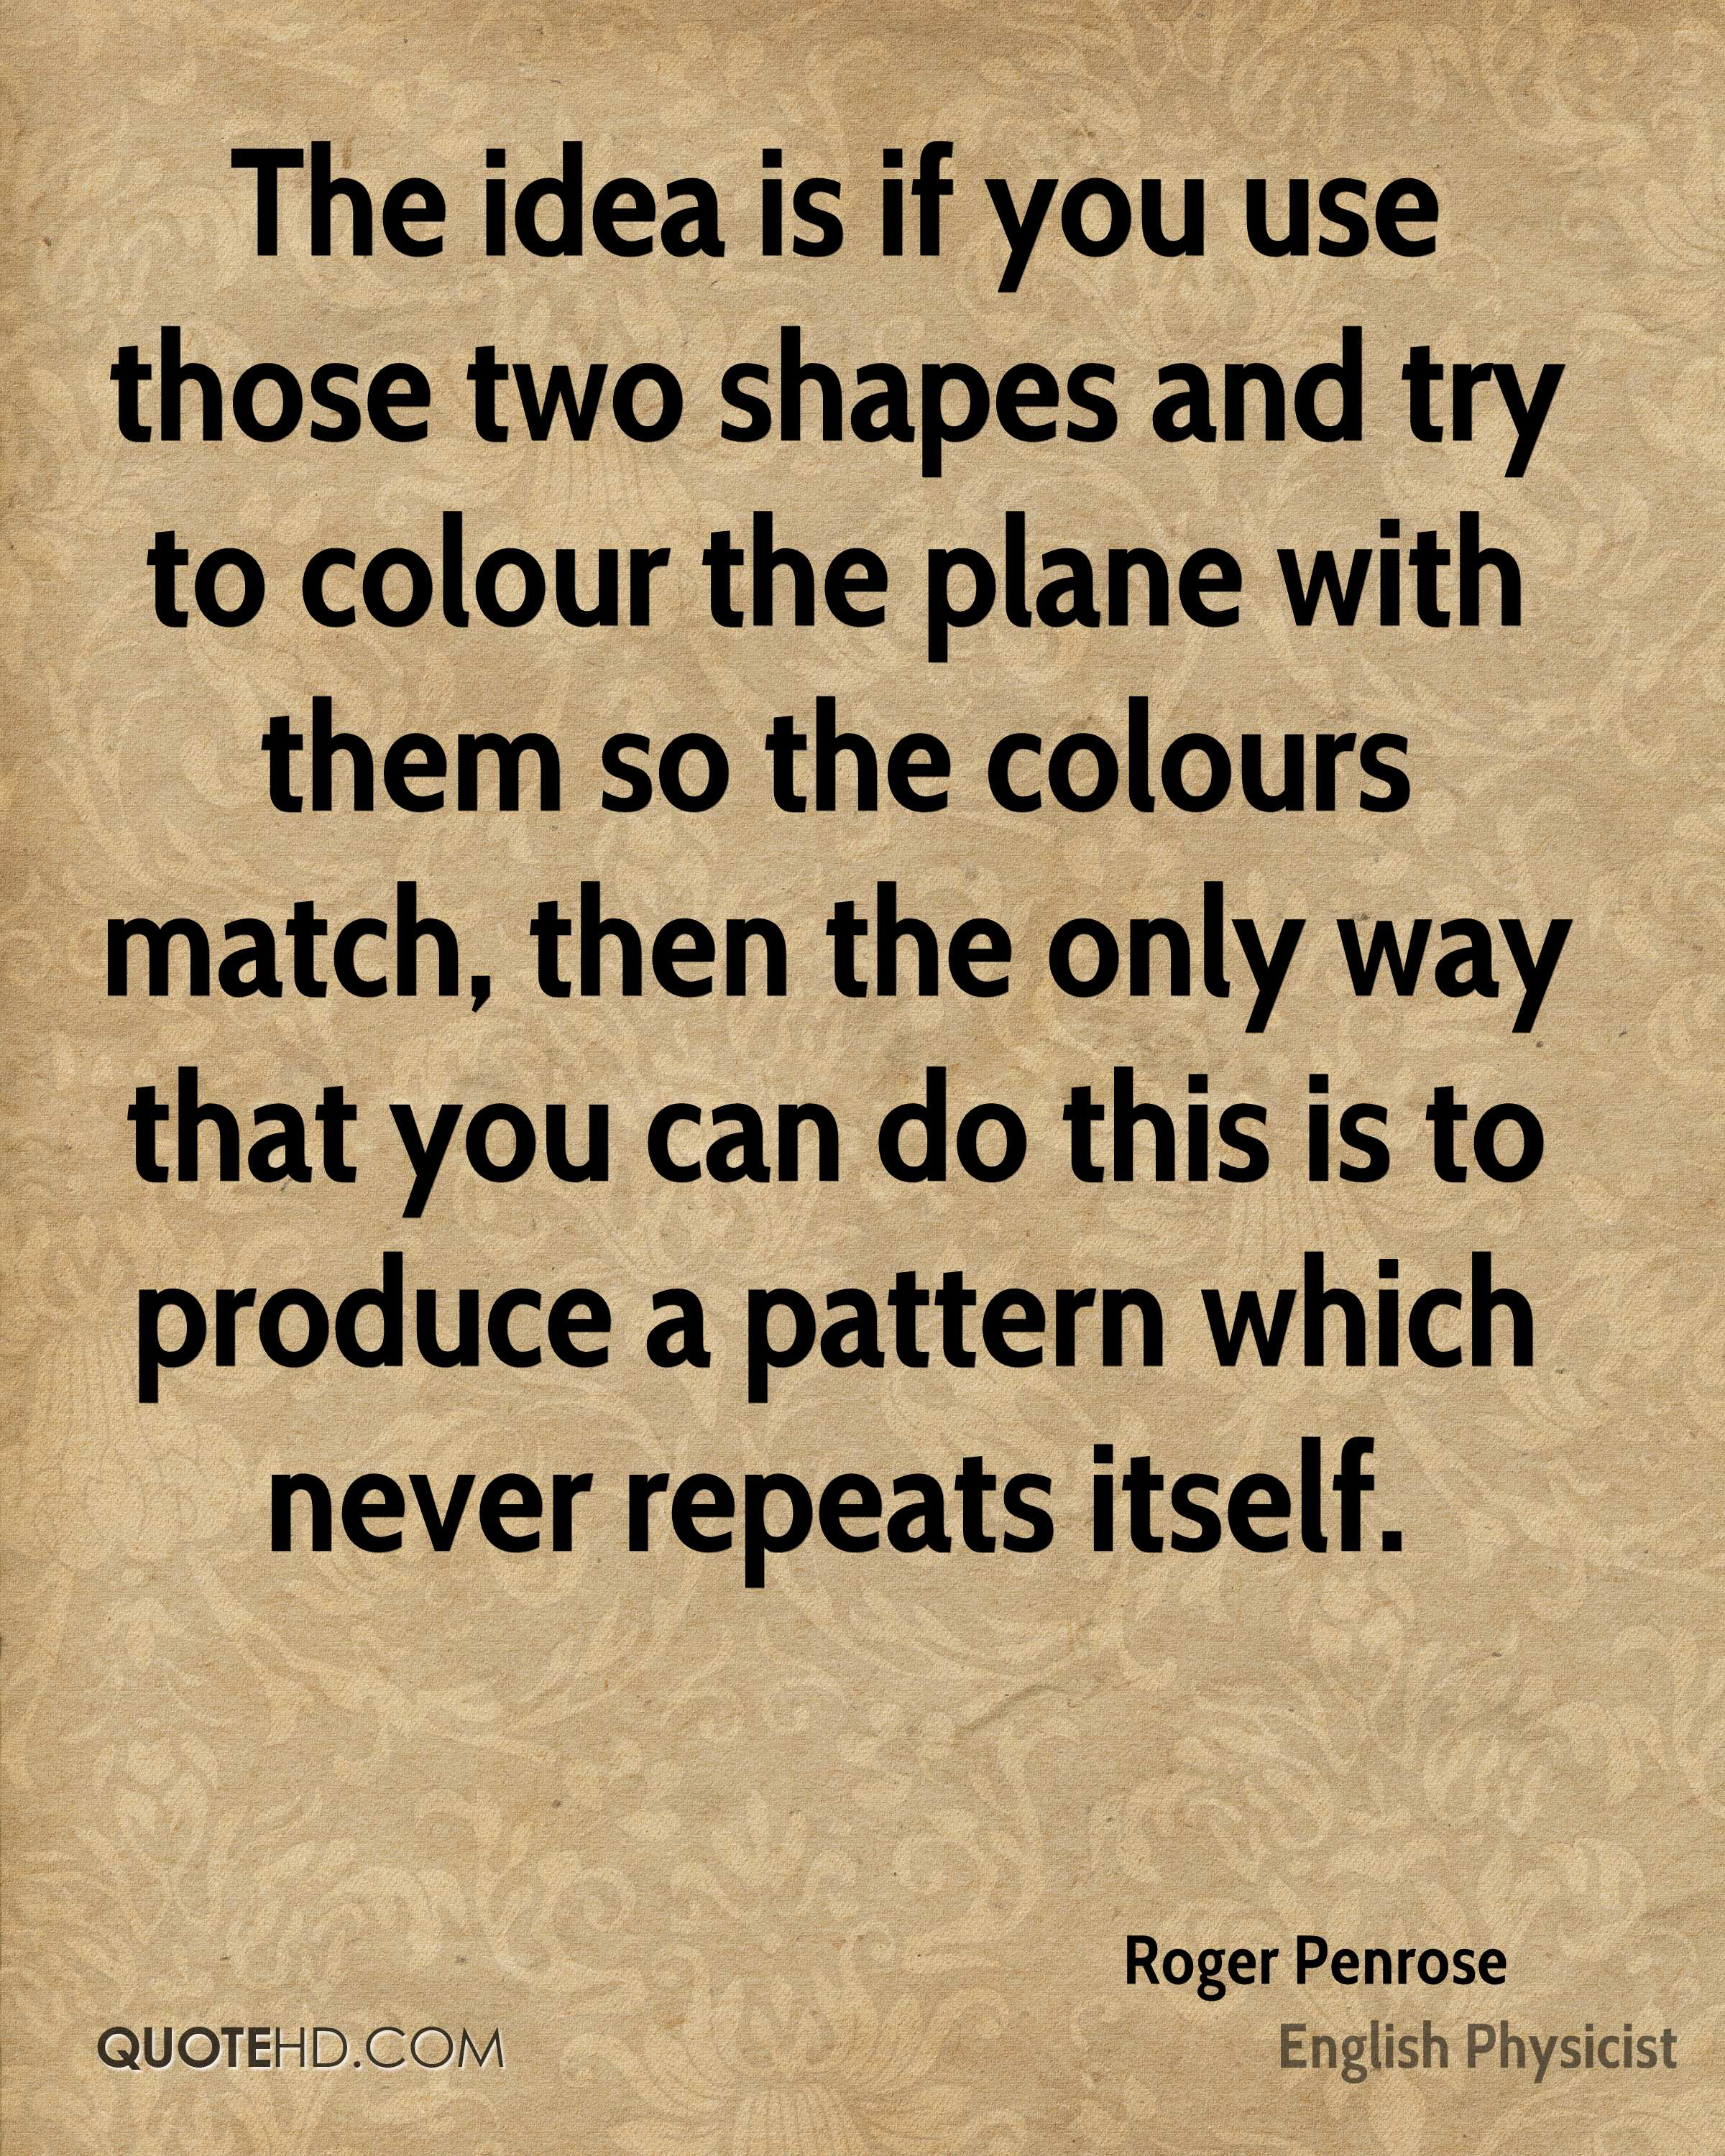 The idea is if you use those two shapes and try to colour the plane with them so the colours match, then the only way that you can do this is to produce a pattern which never repeats itself.